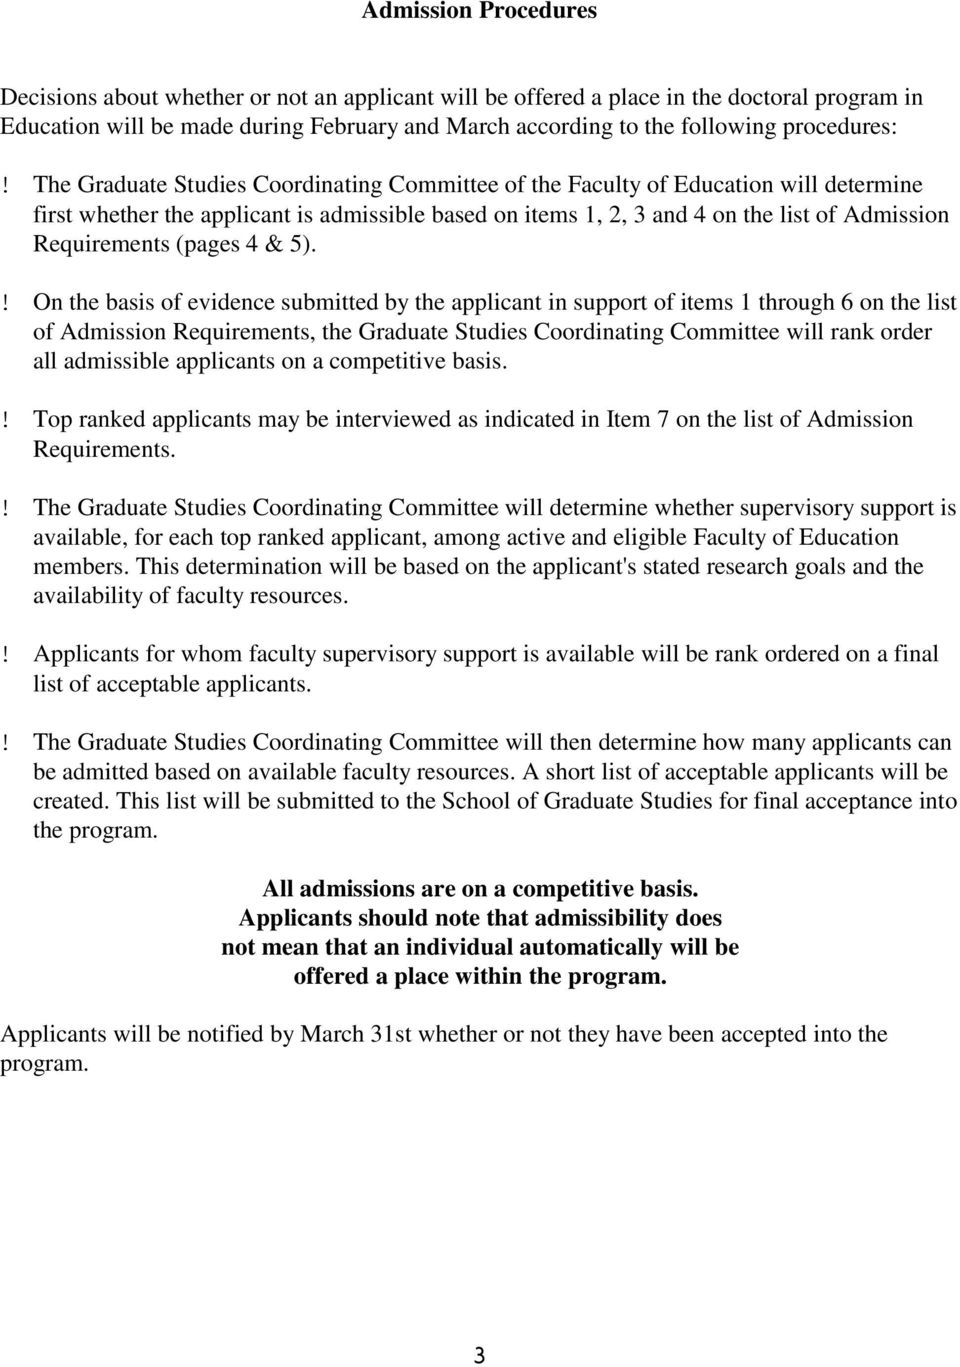 The Graduate Studies Coordinating Committee of the Faculty of Education will determine first whether the applicant is admissible based on items 1, 2, 3 and 4 on the list of Admission Requirements